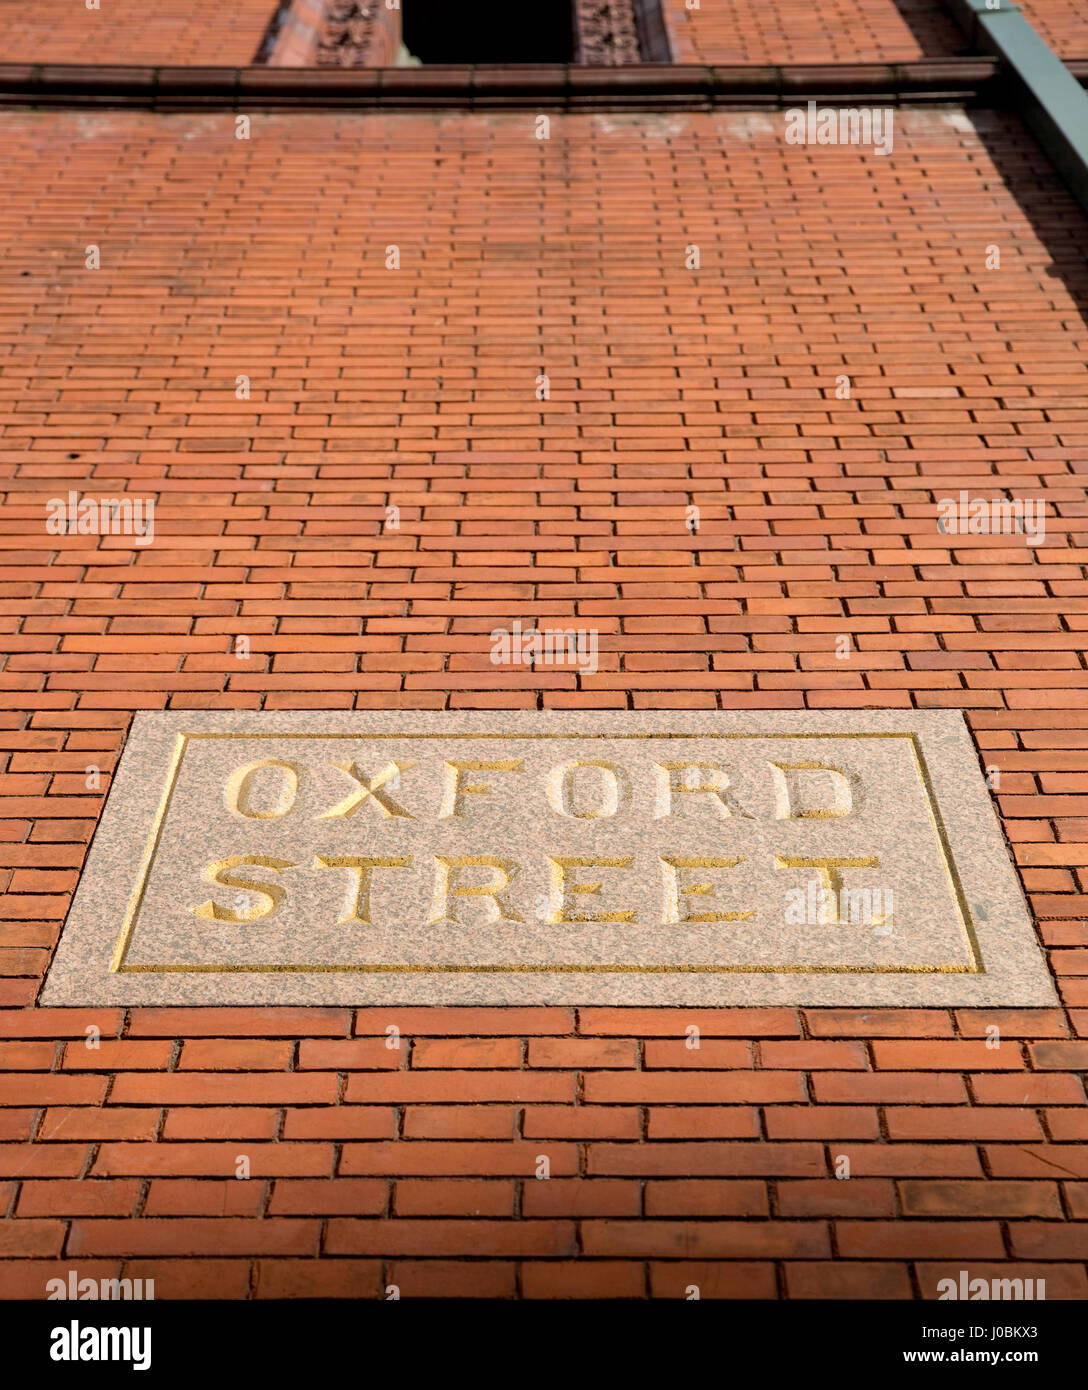 Oxford Street Stone Road Sign, Manchester - Stock Image